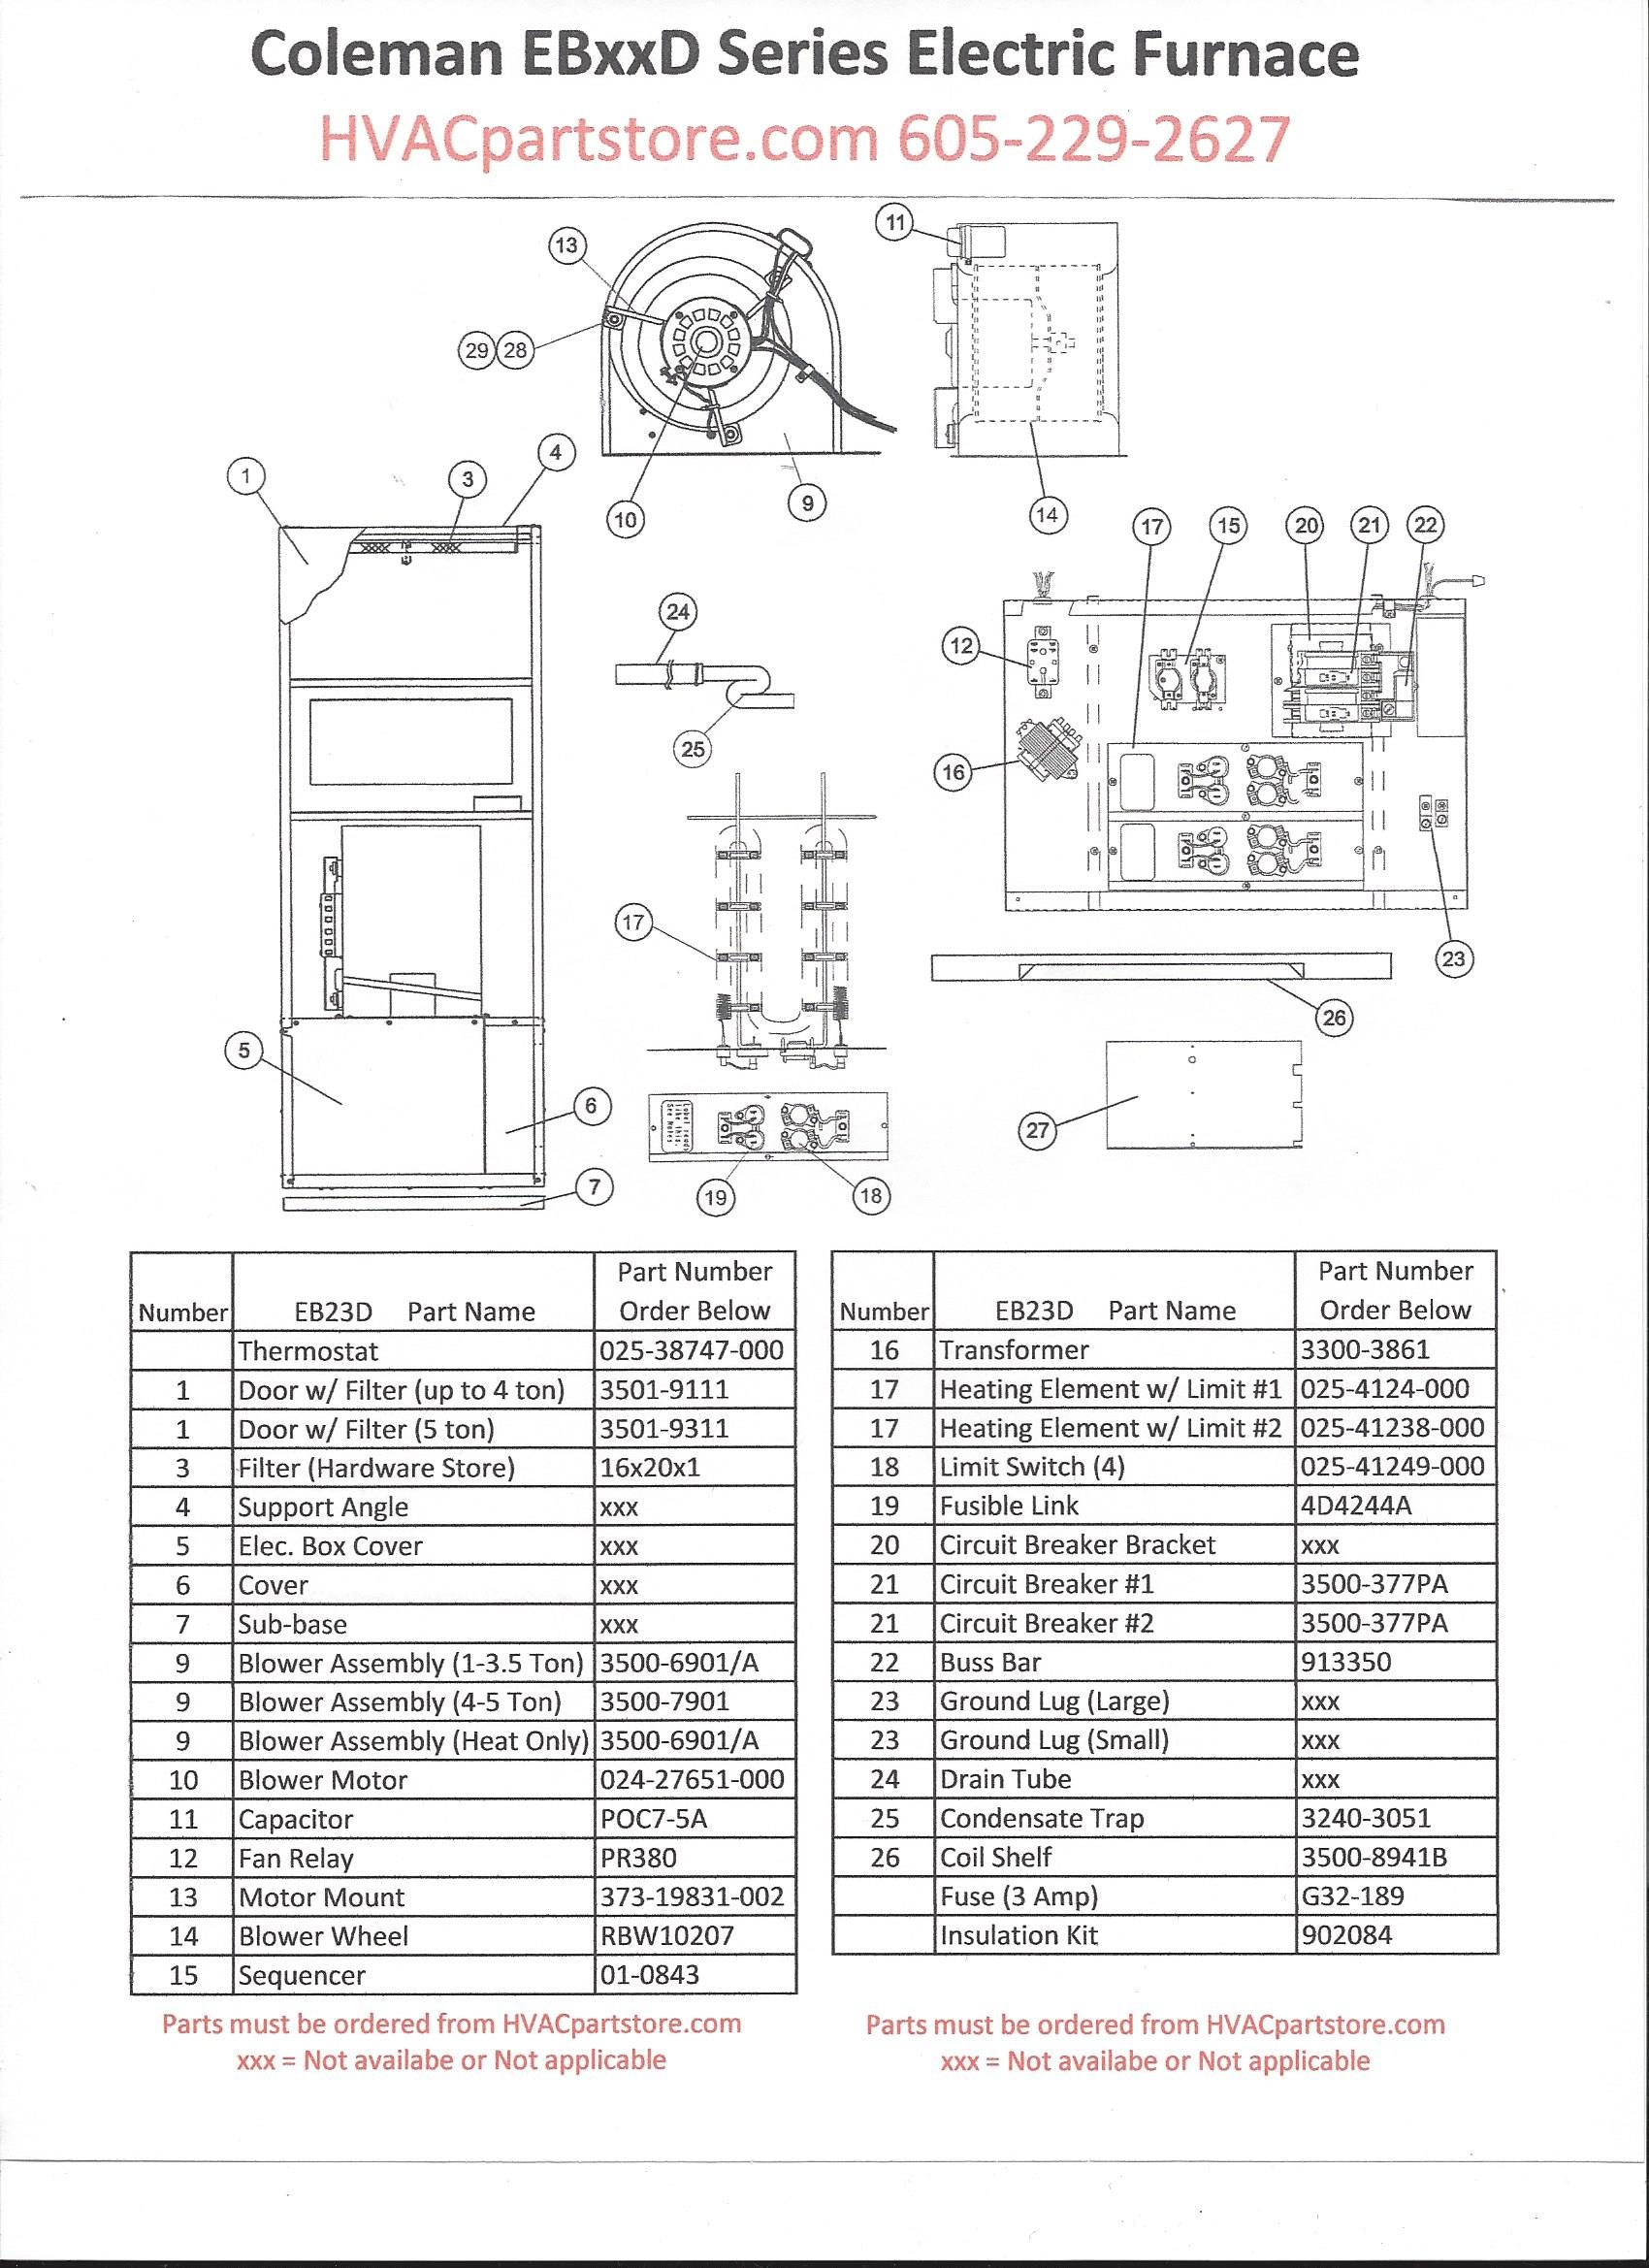 EB23Dparts?3742715724285257463 eb23d coleman electric furnace parts hvacpartstore electric furnace sequencer wiring diagram at mifinder.co